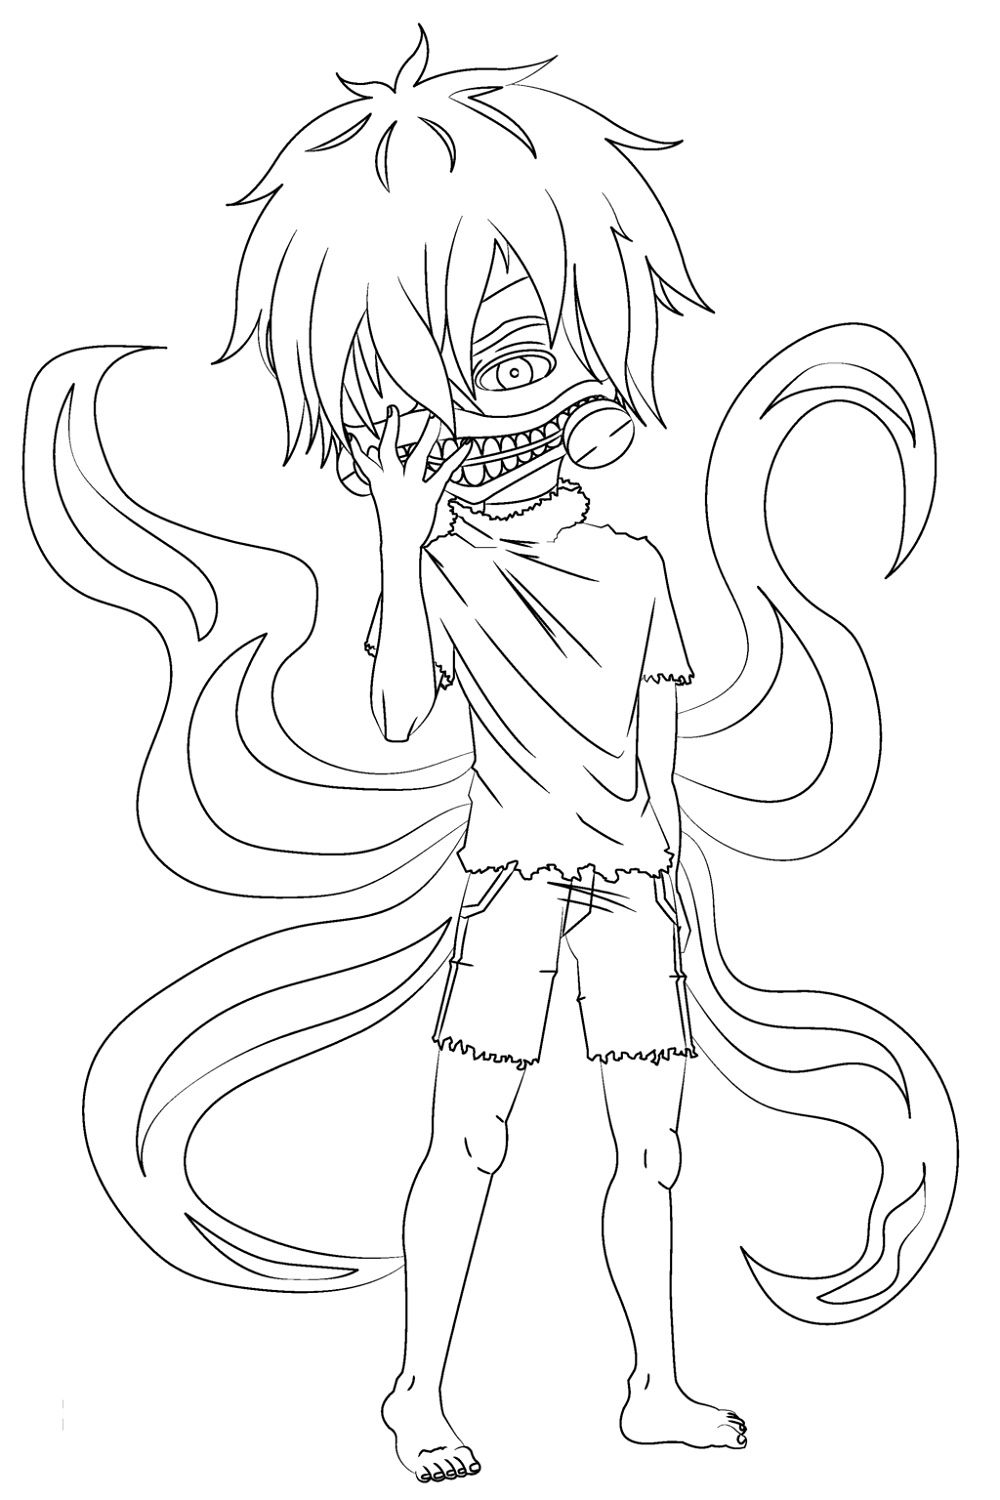 Tokyo Ghoul Coloring Pages Chibi Coloring Pages Chibi Tokyo Ghoul